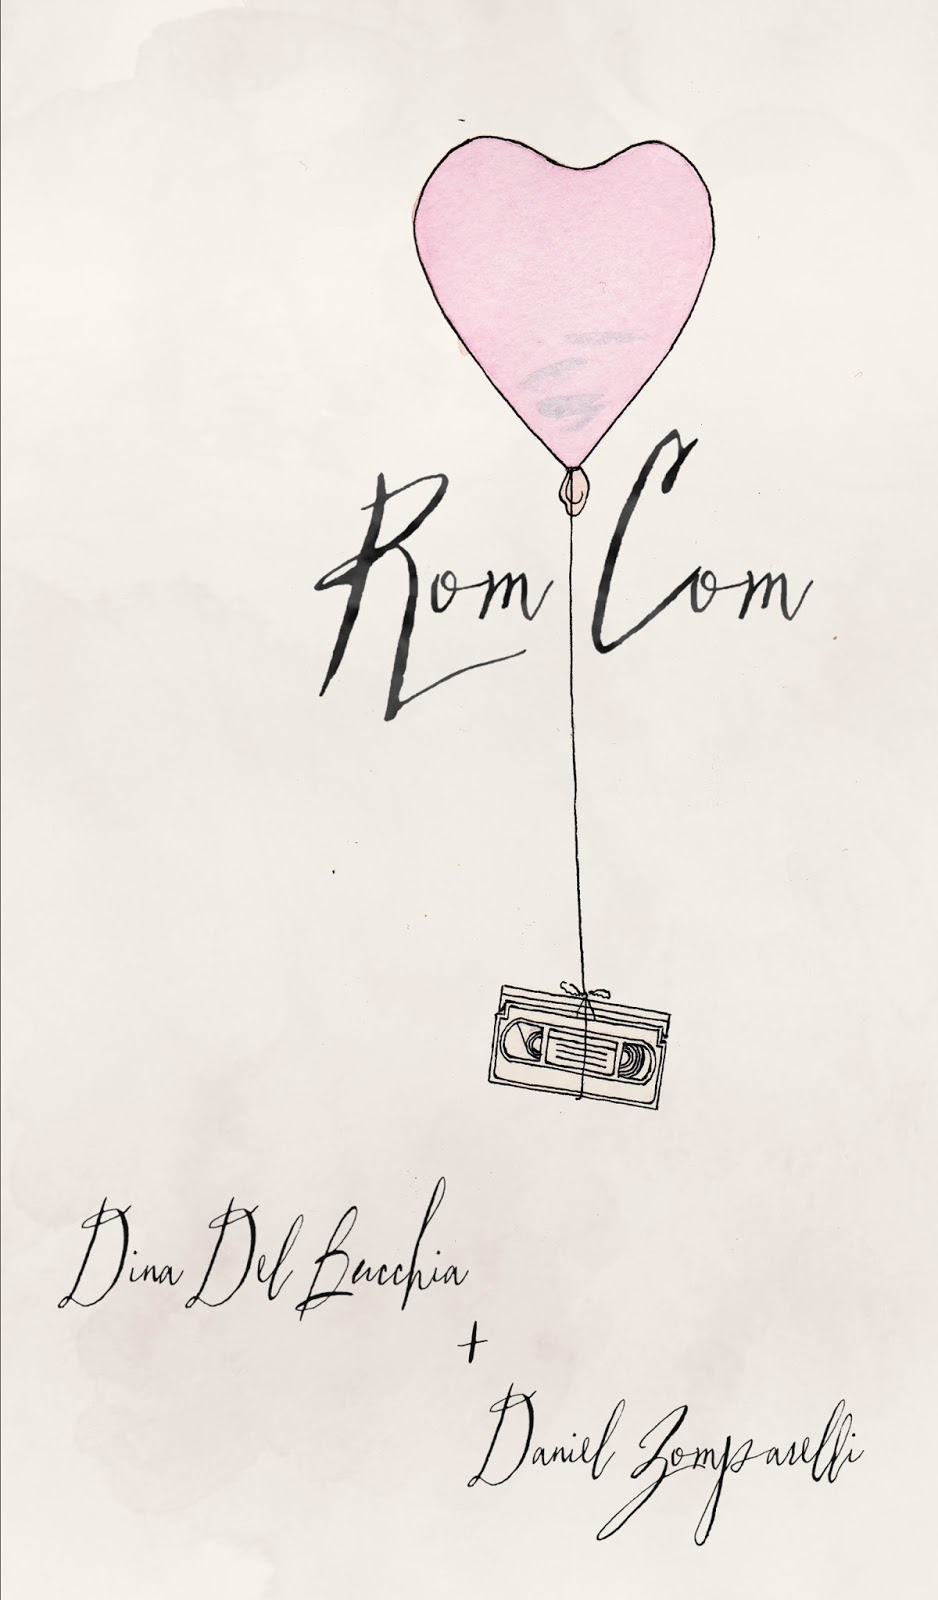 211 Bernard: TONIGHT!! Rom Com: a book launch with Daniel & Dina.